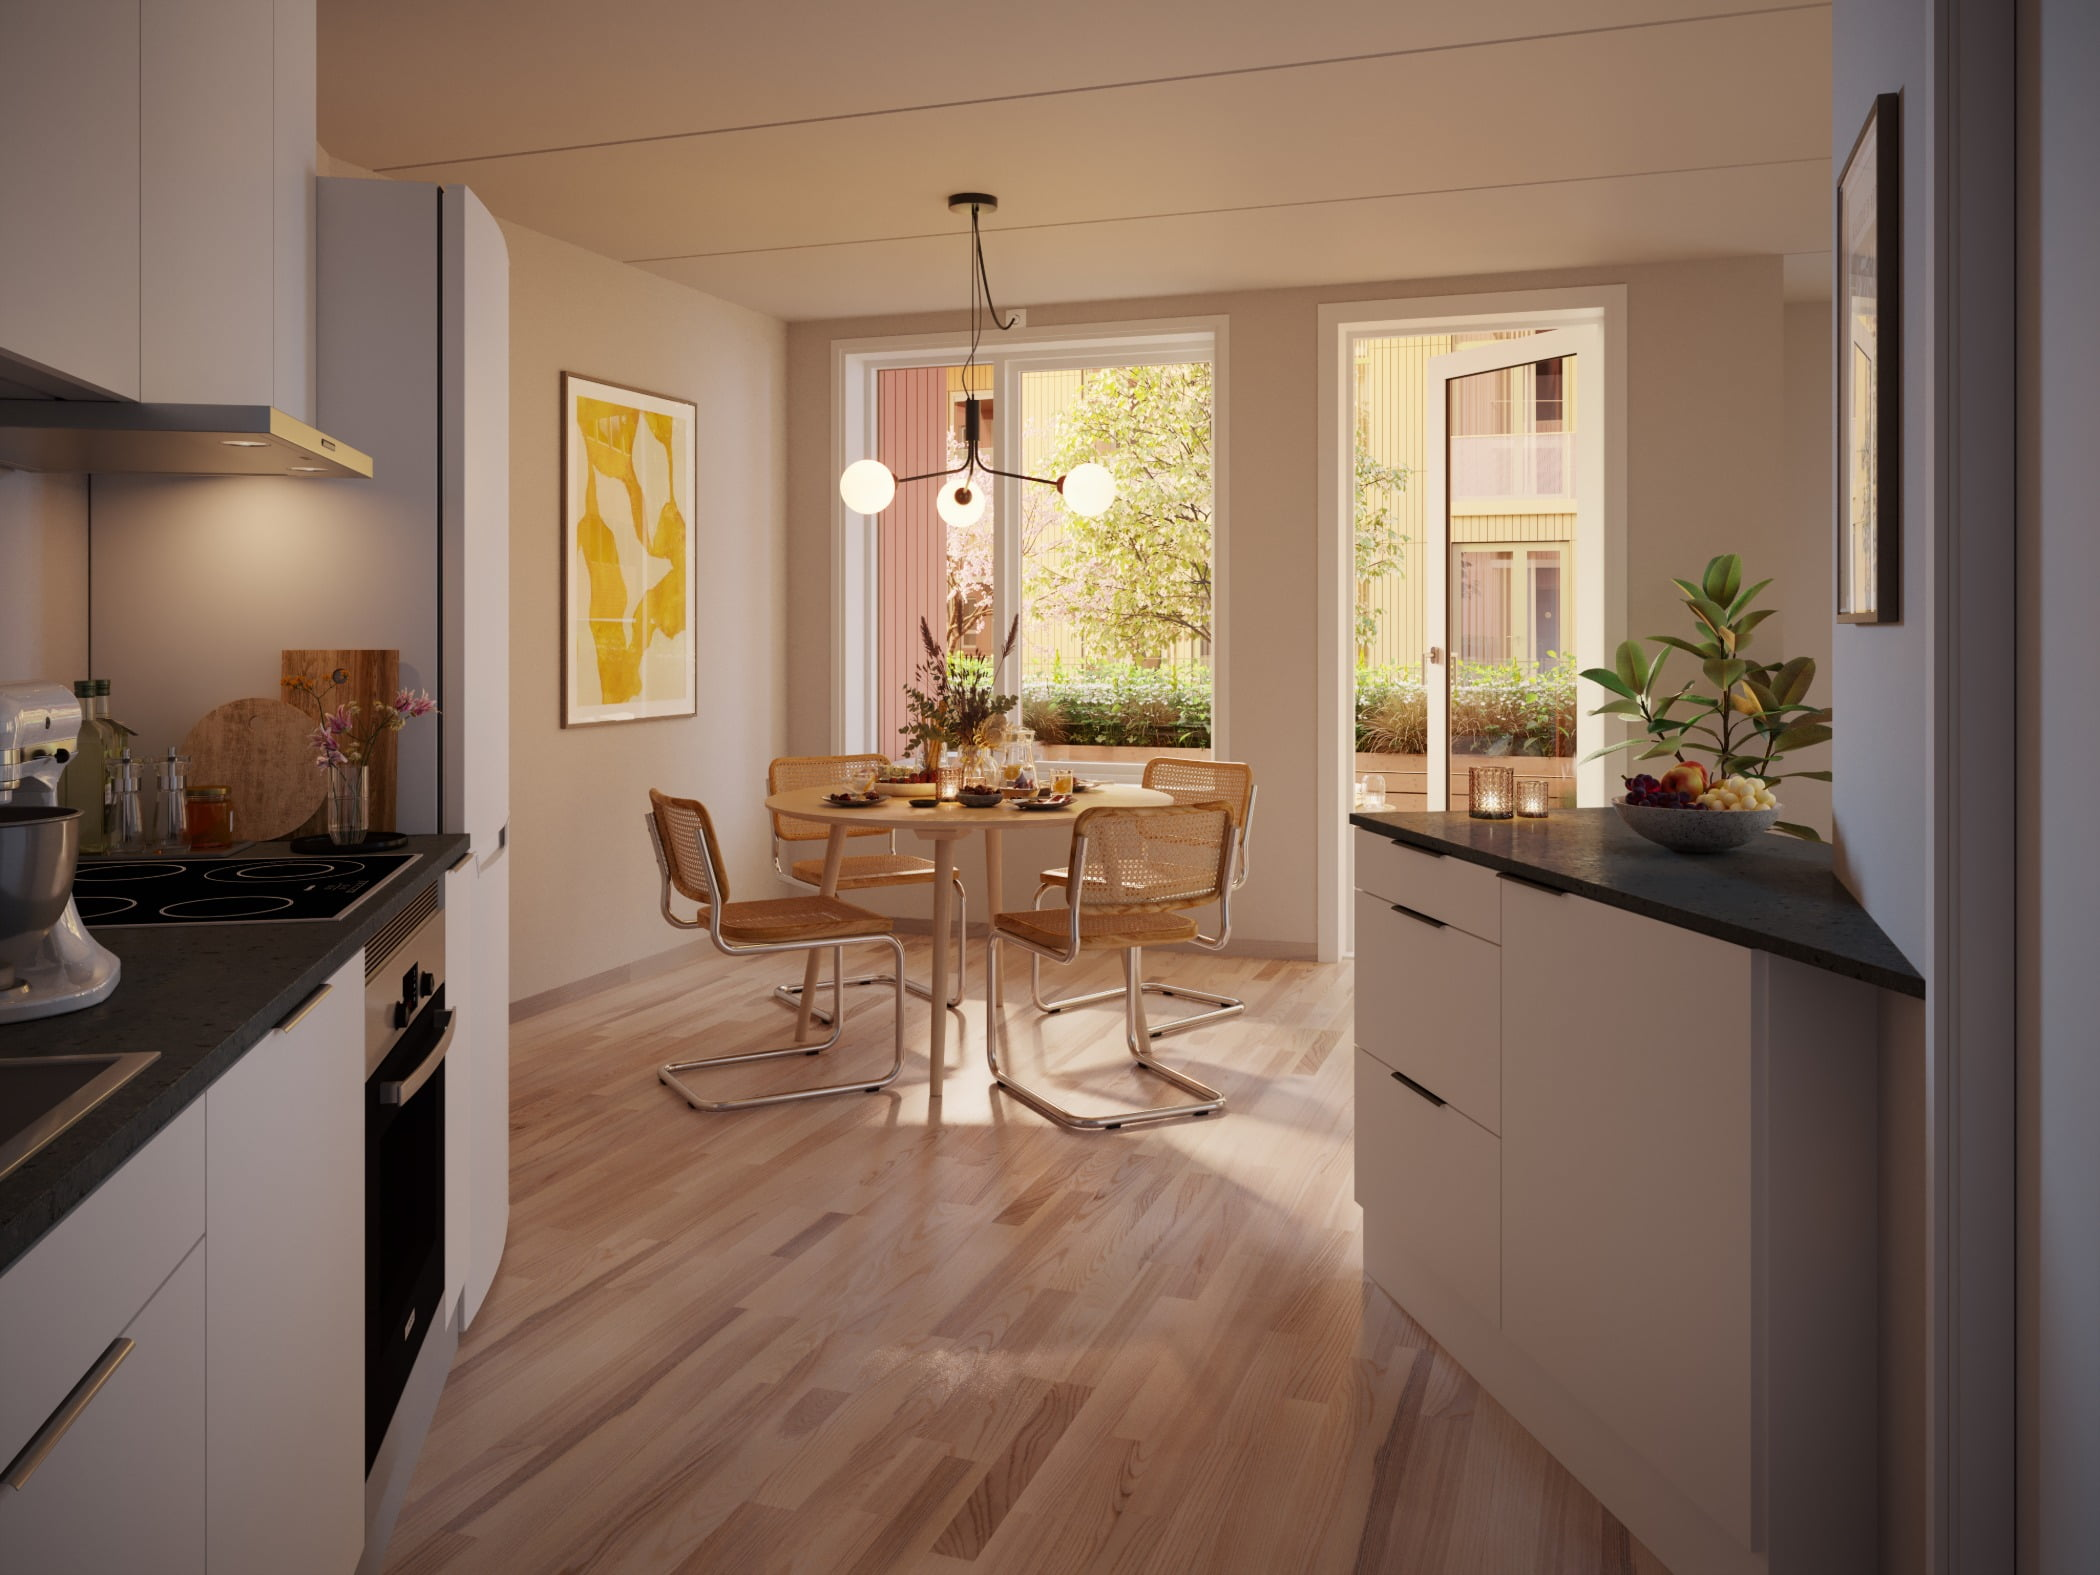 Cabinetry, Property, Furniture, Plant, Table, Countertop, Window, Houseplant, Wood, Flowerpot